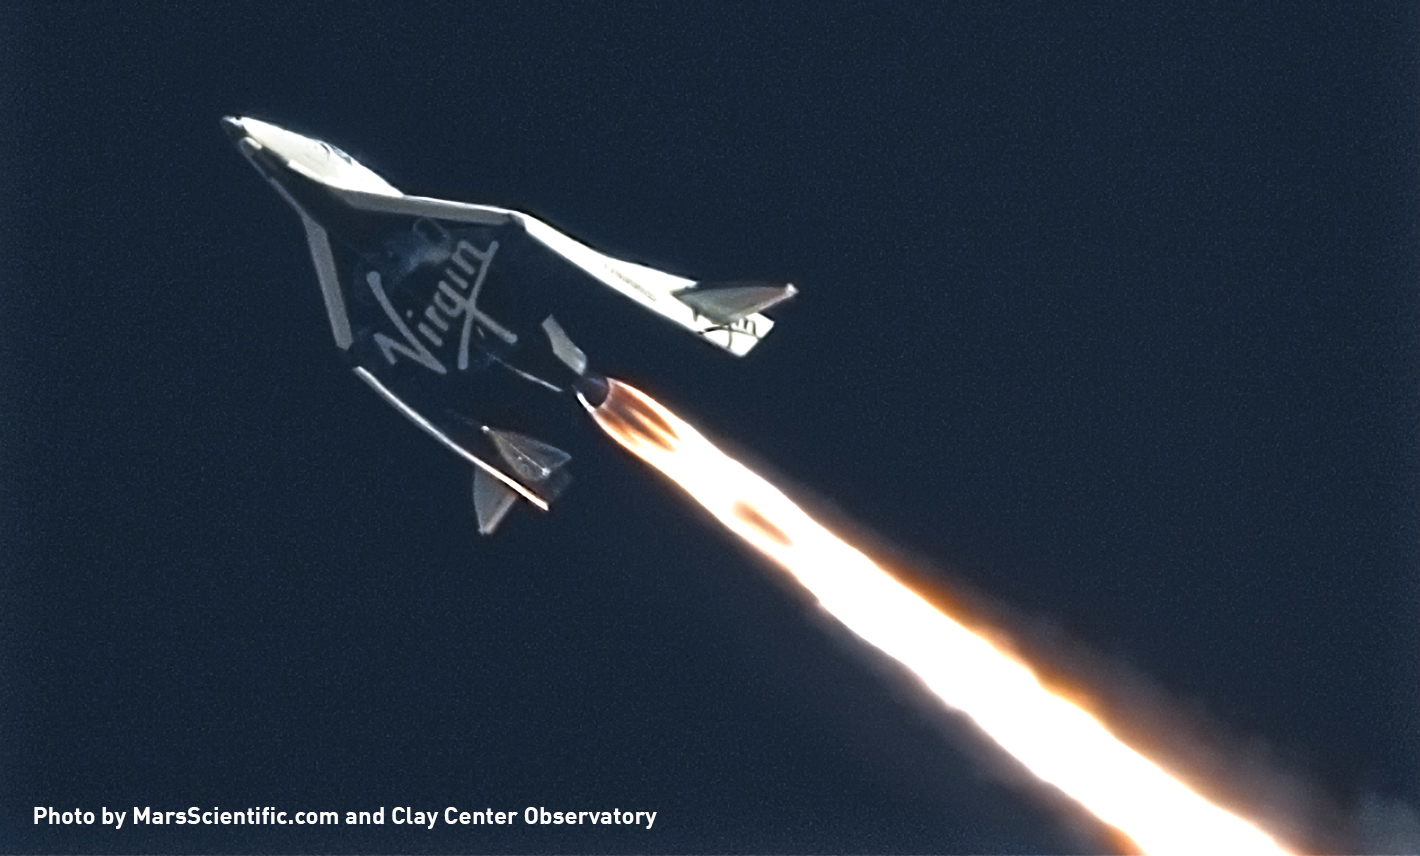 Virgin Galagtic's SpaceShipTwo (Credit: MarsScientific.com and Clay Center Observatory)